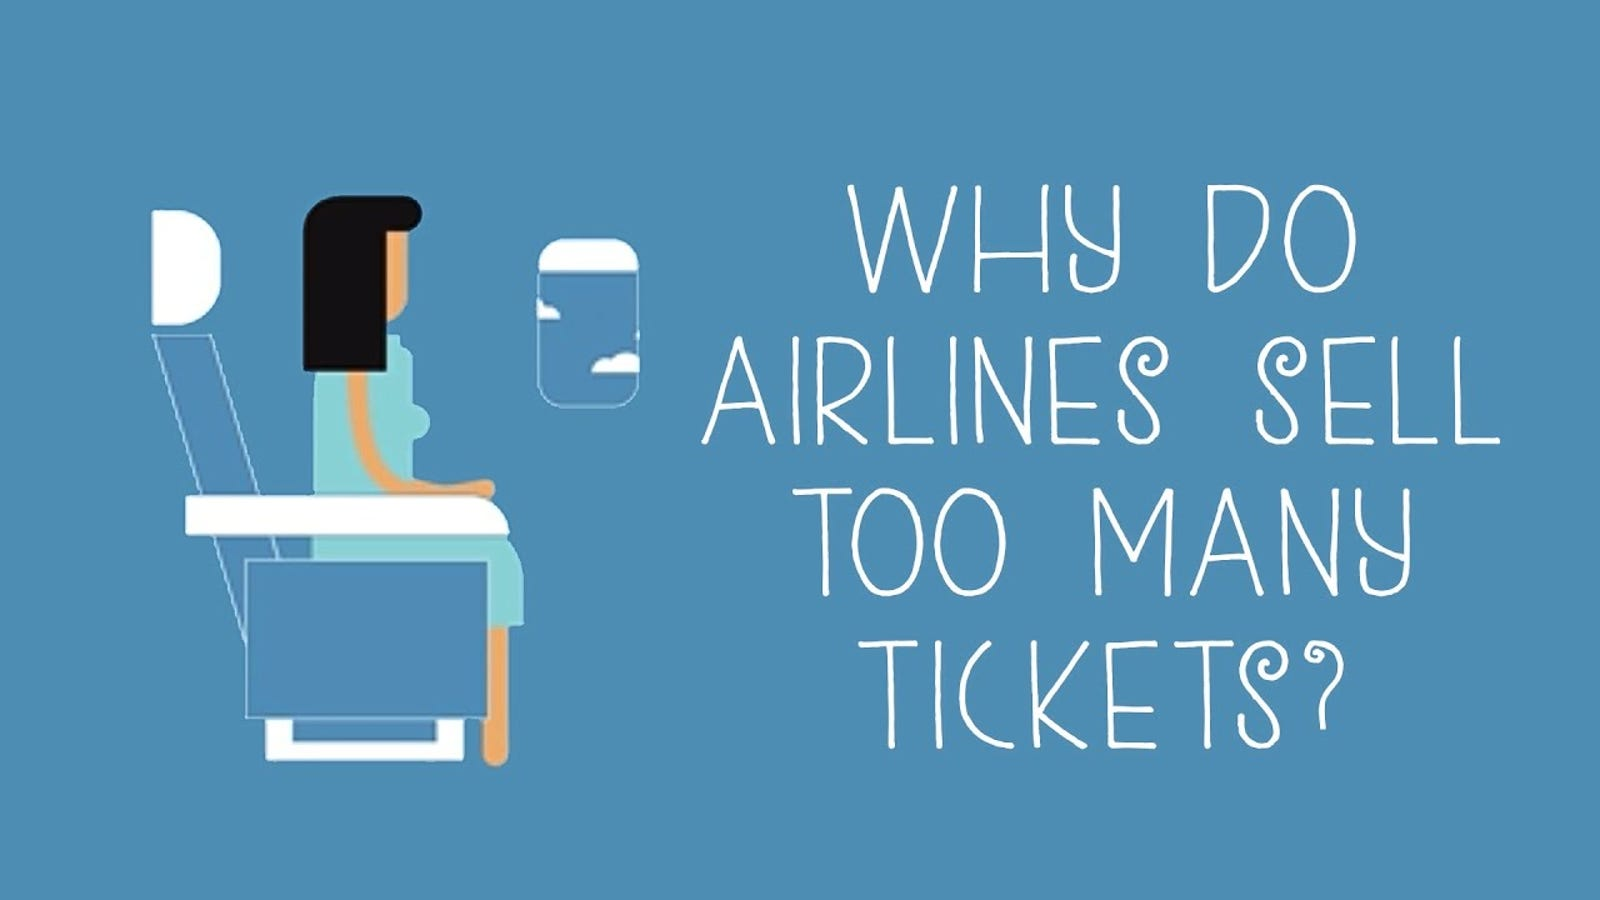 The Twisted Logic Behind Why Airlines Sell Too Many Tickets